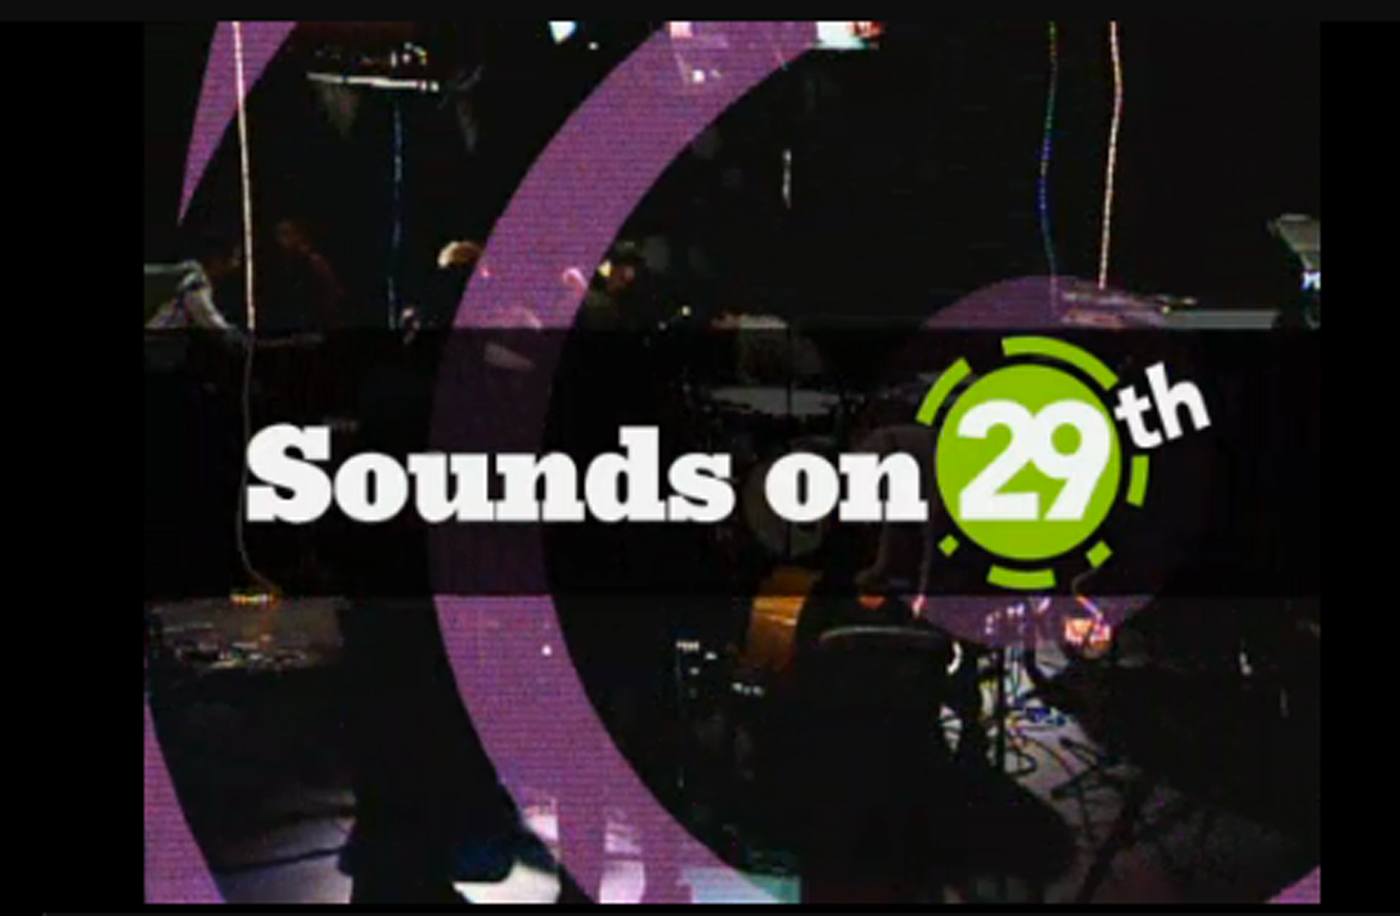 Colorado Public Television: Sounds on 29th